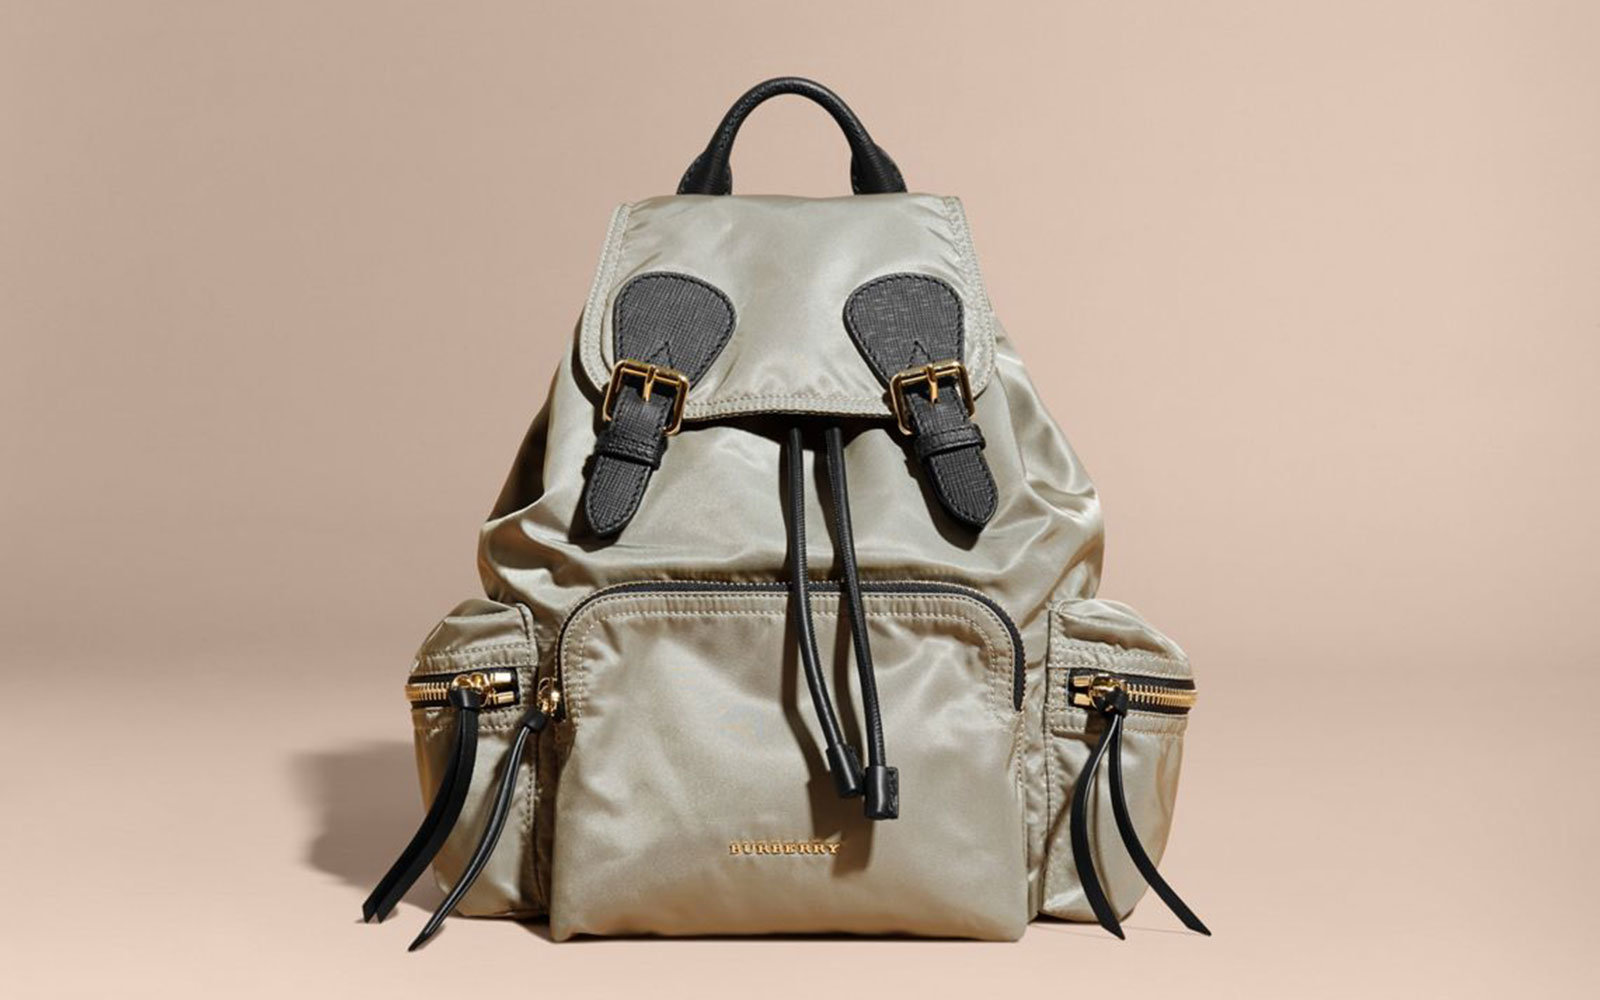 Burberry Medium Rucksack. Luxury Travel Backpacks b1a3a603f2905